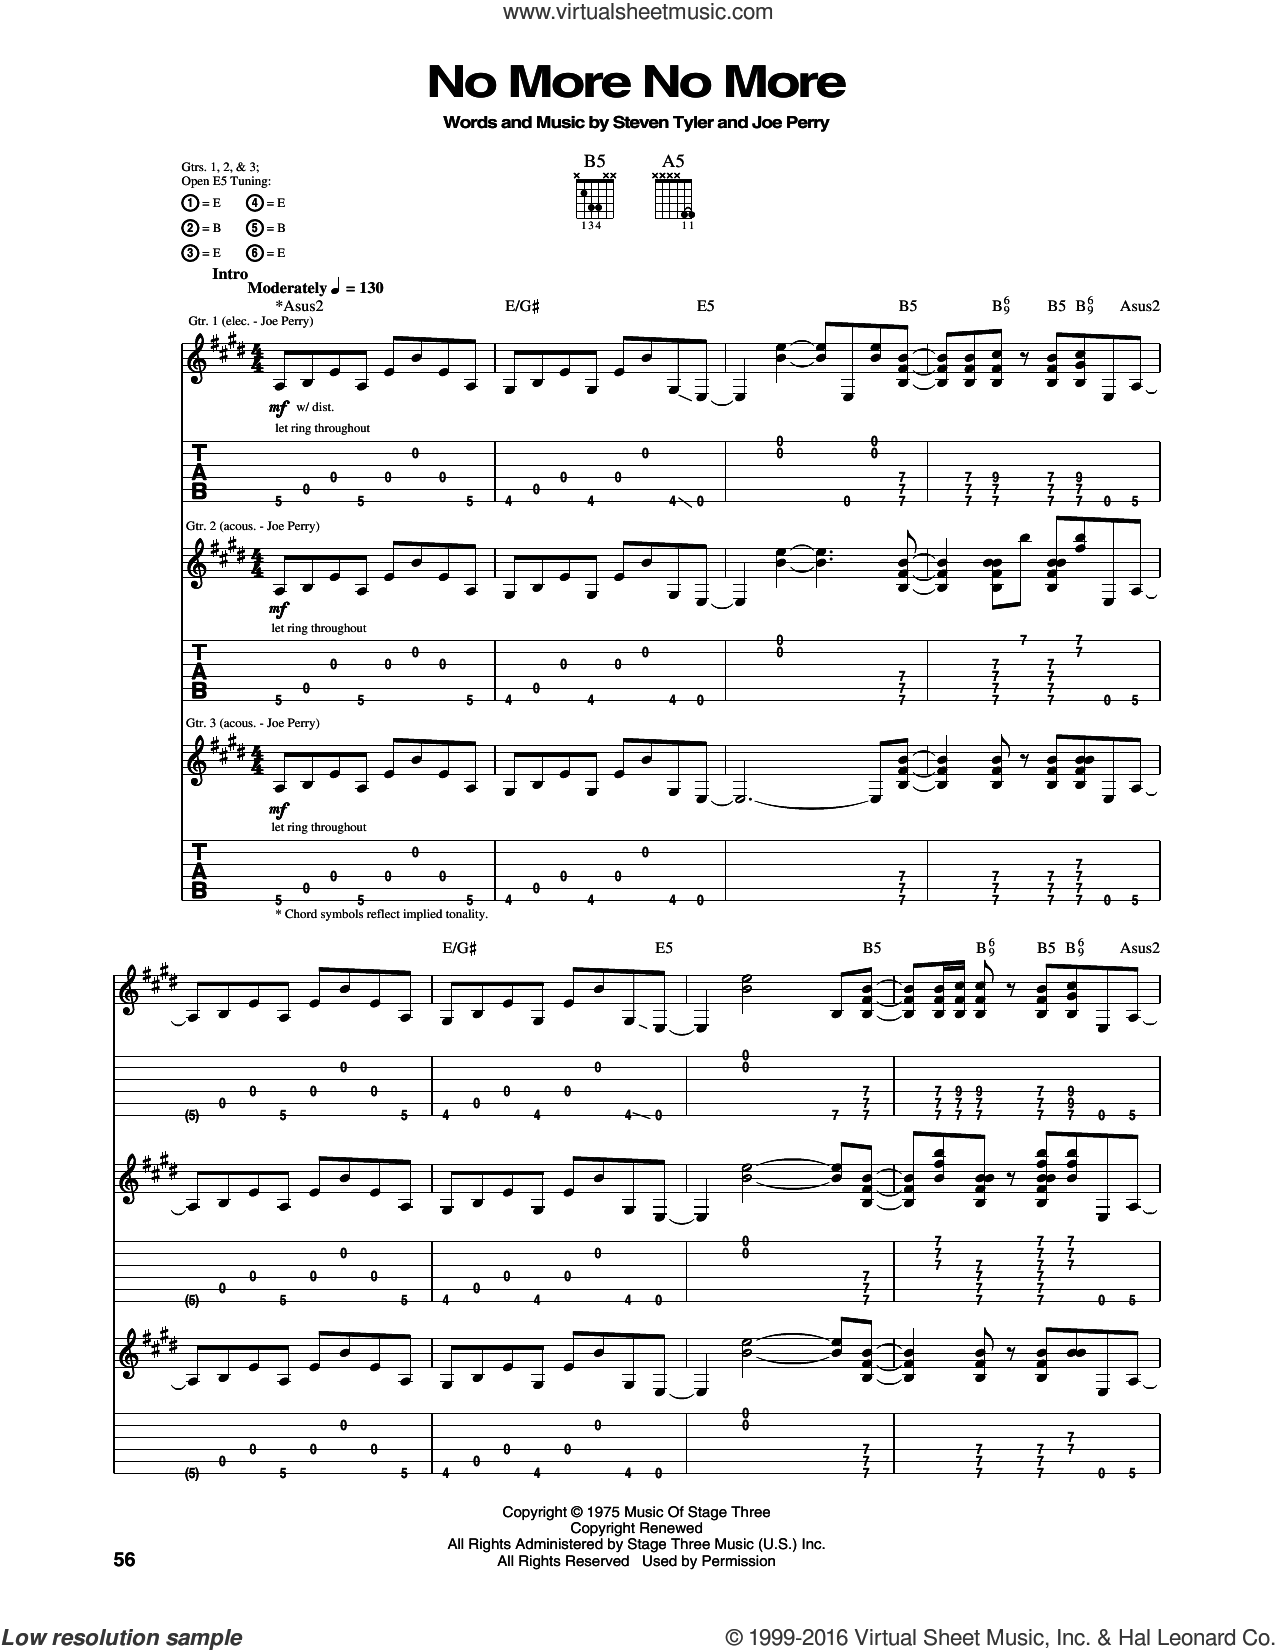 No More No More sheet music for guitar (tablature) by Aerosmith, Joe Perry and Steven Tyler, intermediate skill level